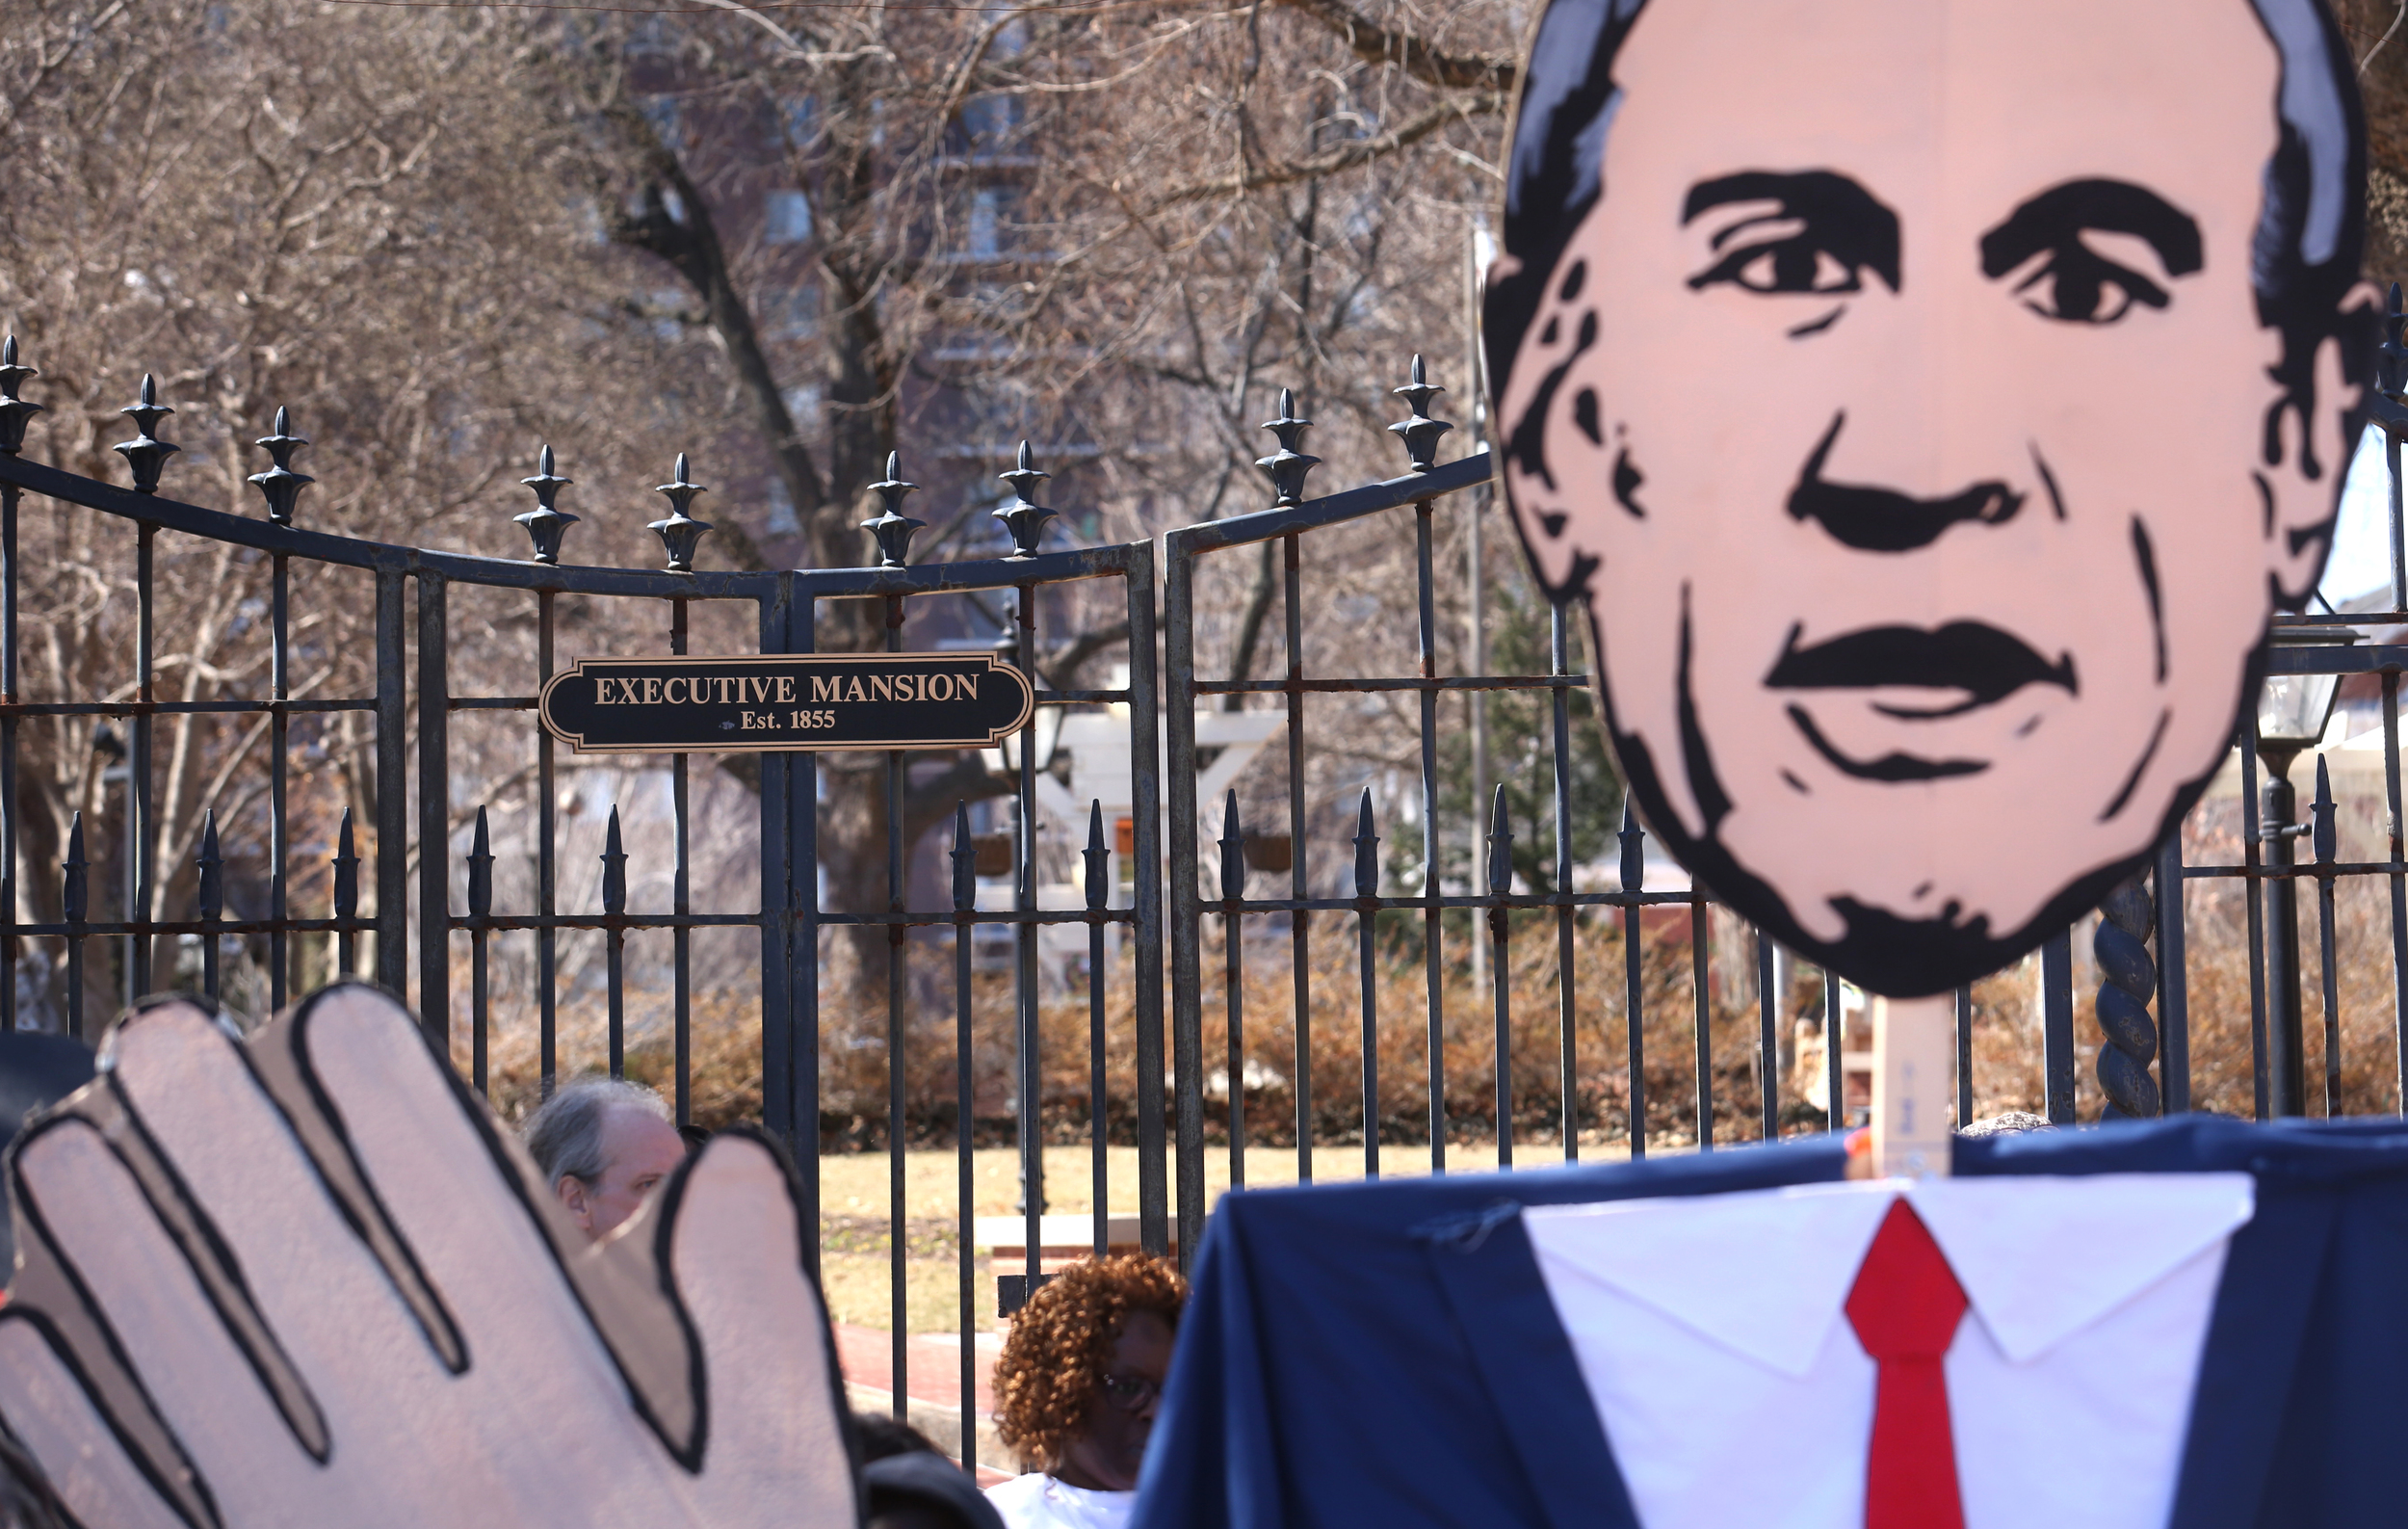 """A large caricature of Gov. Bruce Rauner is held by protestors during a rally and """"funeral"""" at the east gate entrance to the Governor's Mansion in Springfield on Wed. March 11, 2015. As part of """"We Rise"""", a national day of action targeting state budget cuts, several thousand people from faith, community and labor organizations including adults, children and clergy affected by Gov. Bruce Rauner's proposed cuts gathered in Springfield to protest. The event began with a rally inside the Capitol building followed by a march to the governor's mansion where a mock """"funeral"""" for the """"99%"""" took place. David Spencer/The State Journal-Register"""